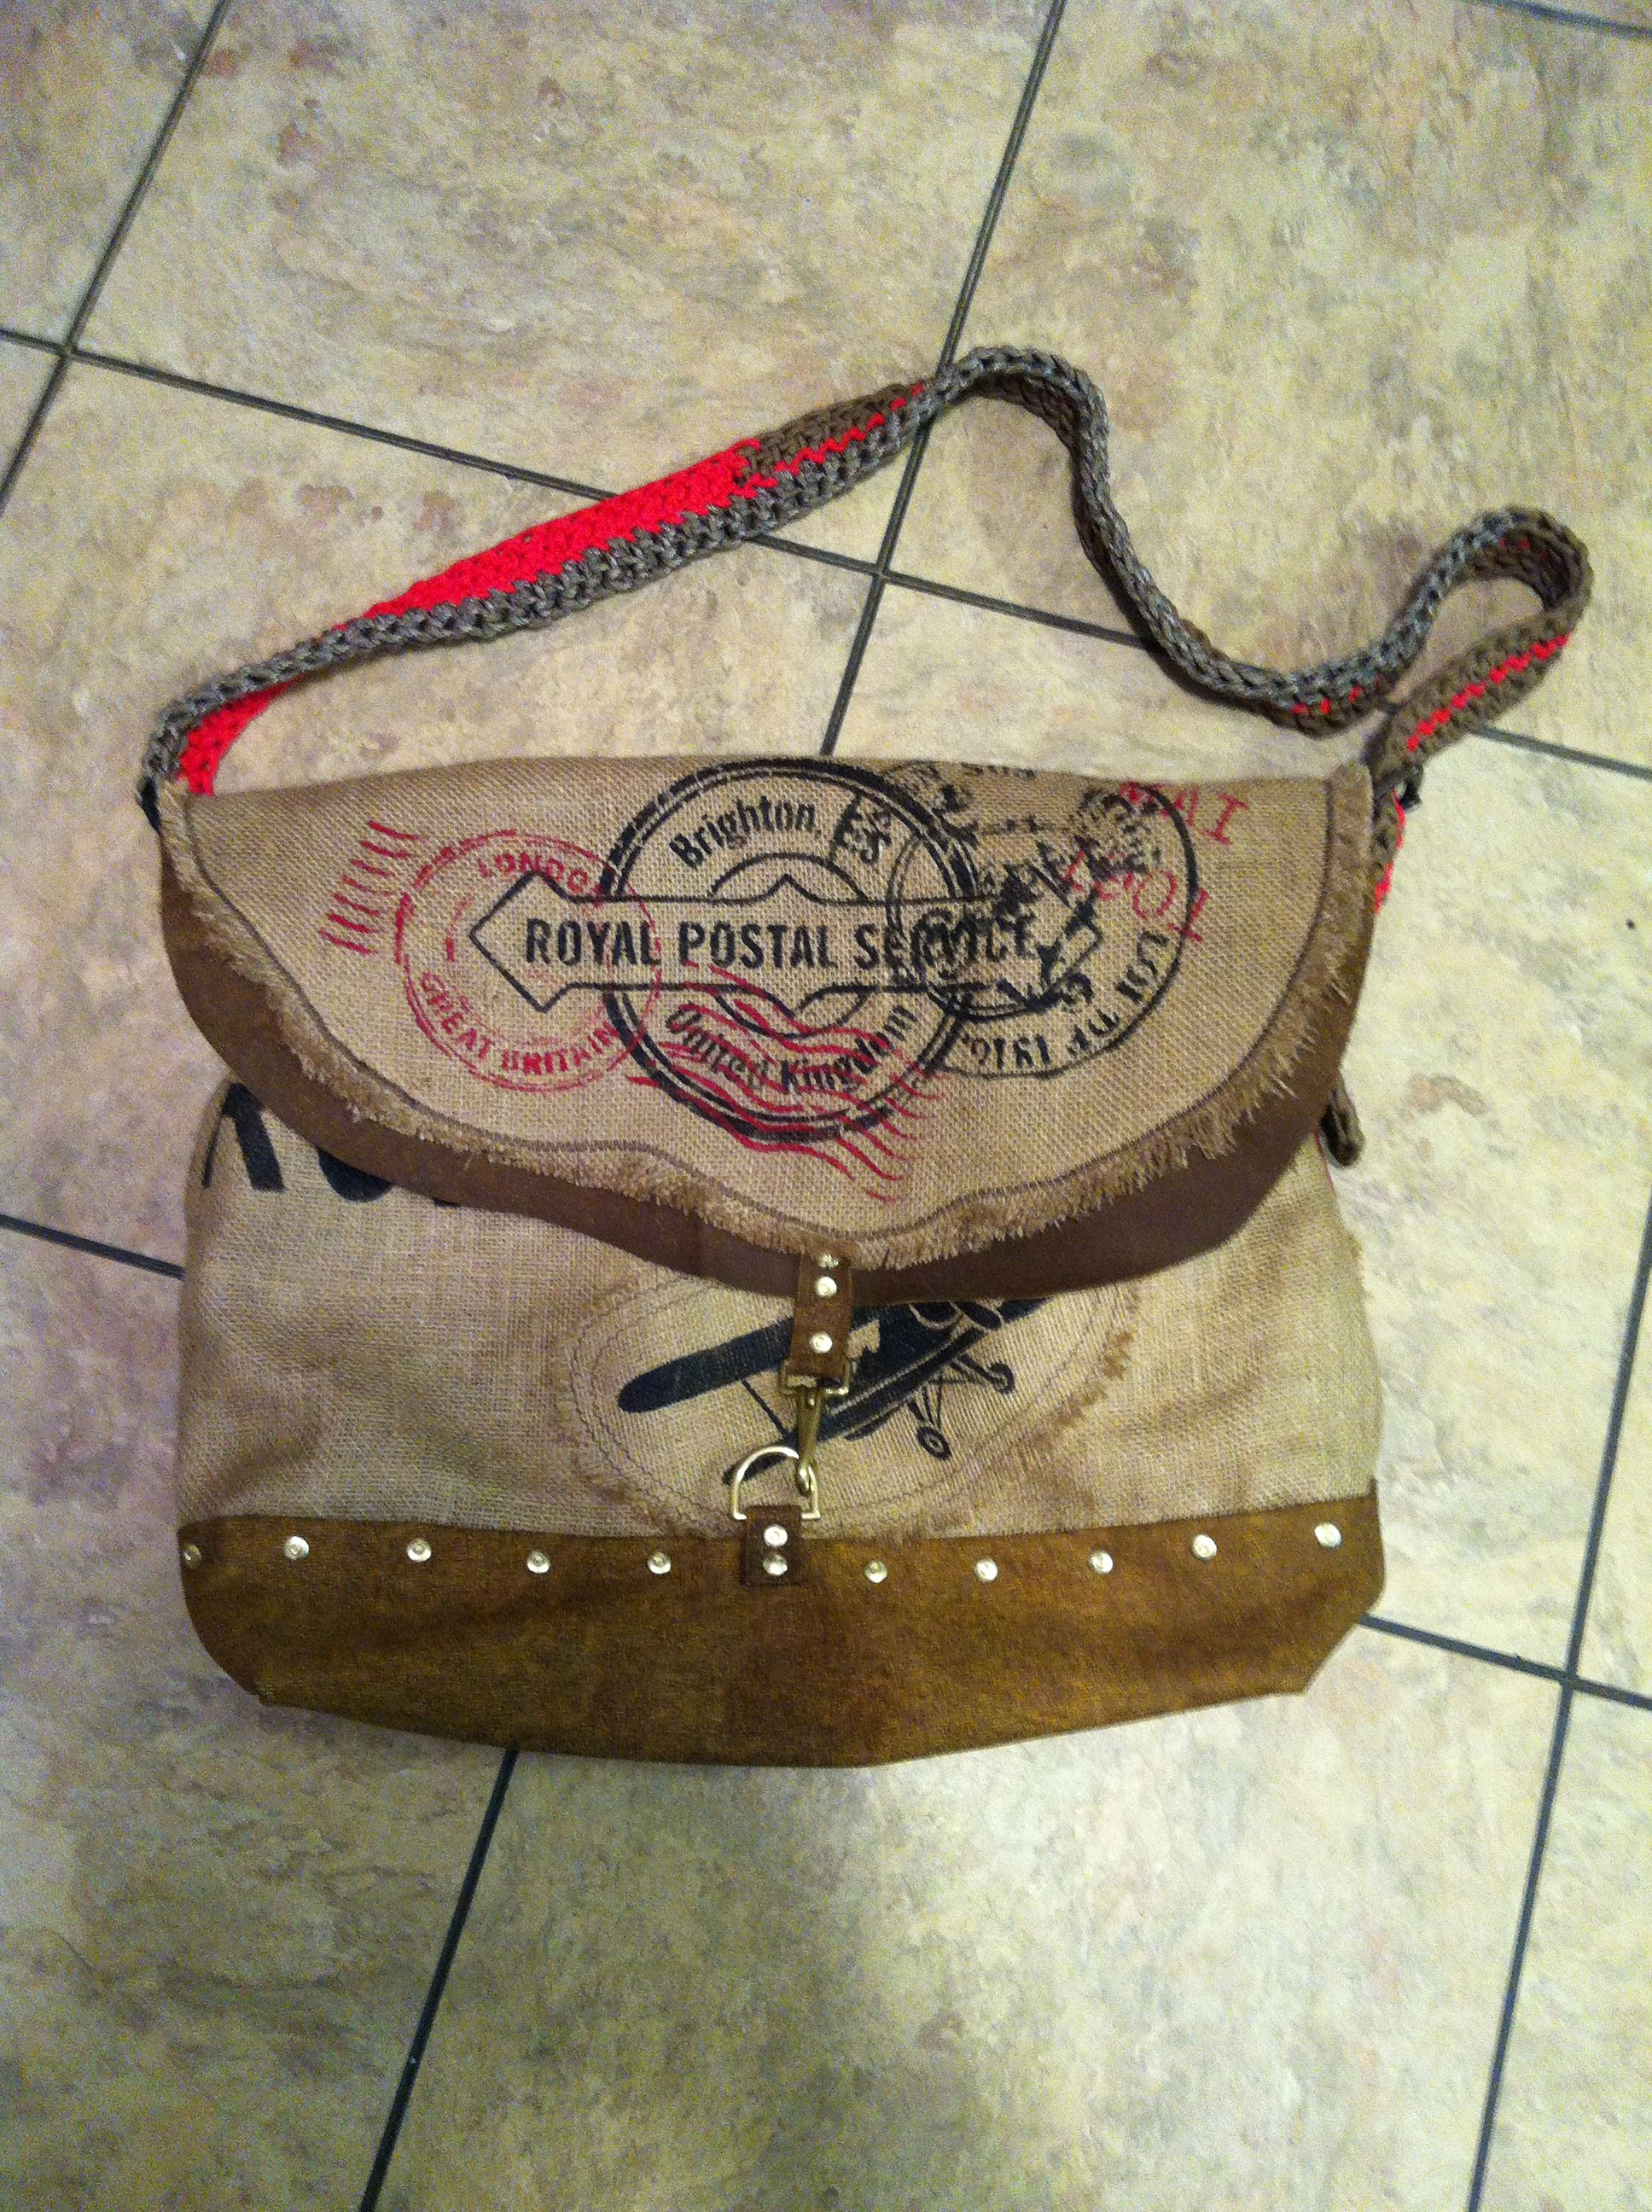 Leather flight bag with woven para cord 550 strap